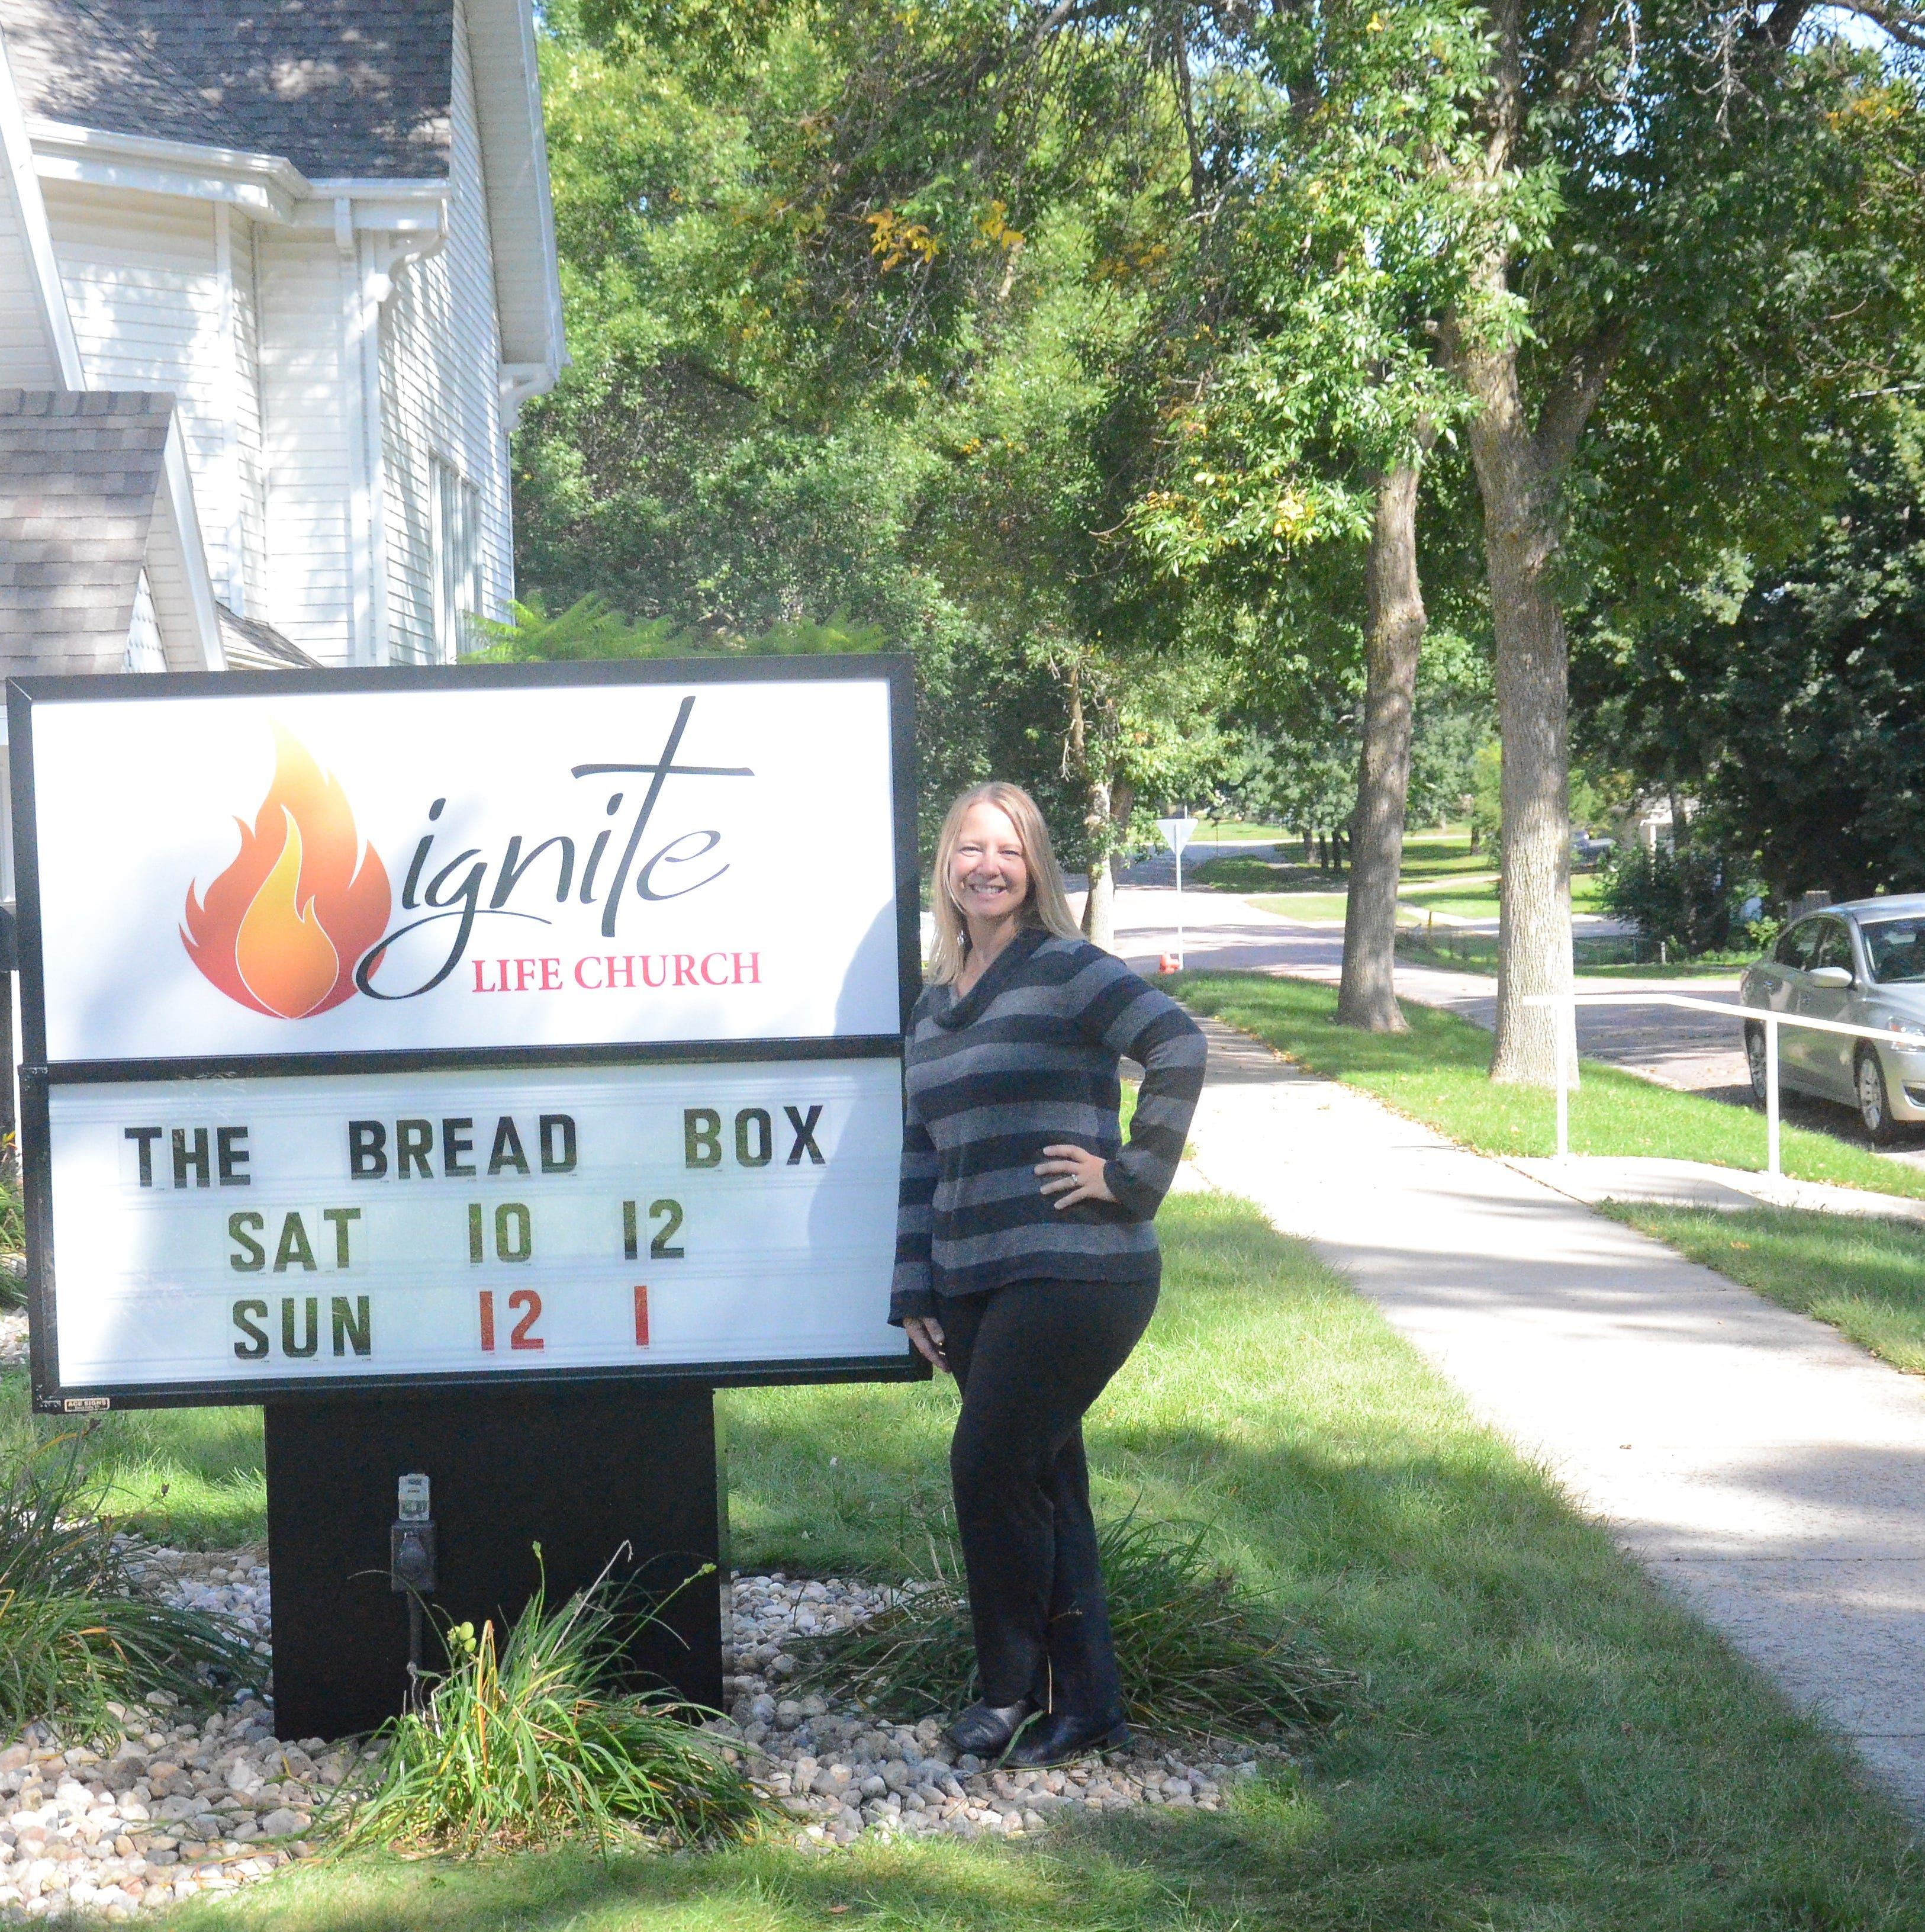 Baptist church renews itself with change in name, mission, schedule